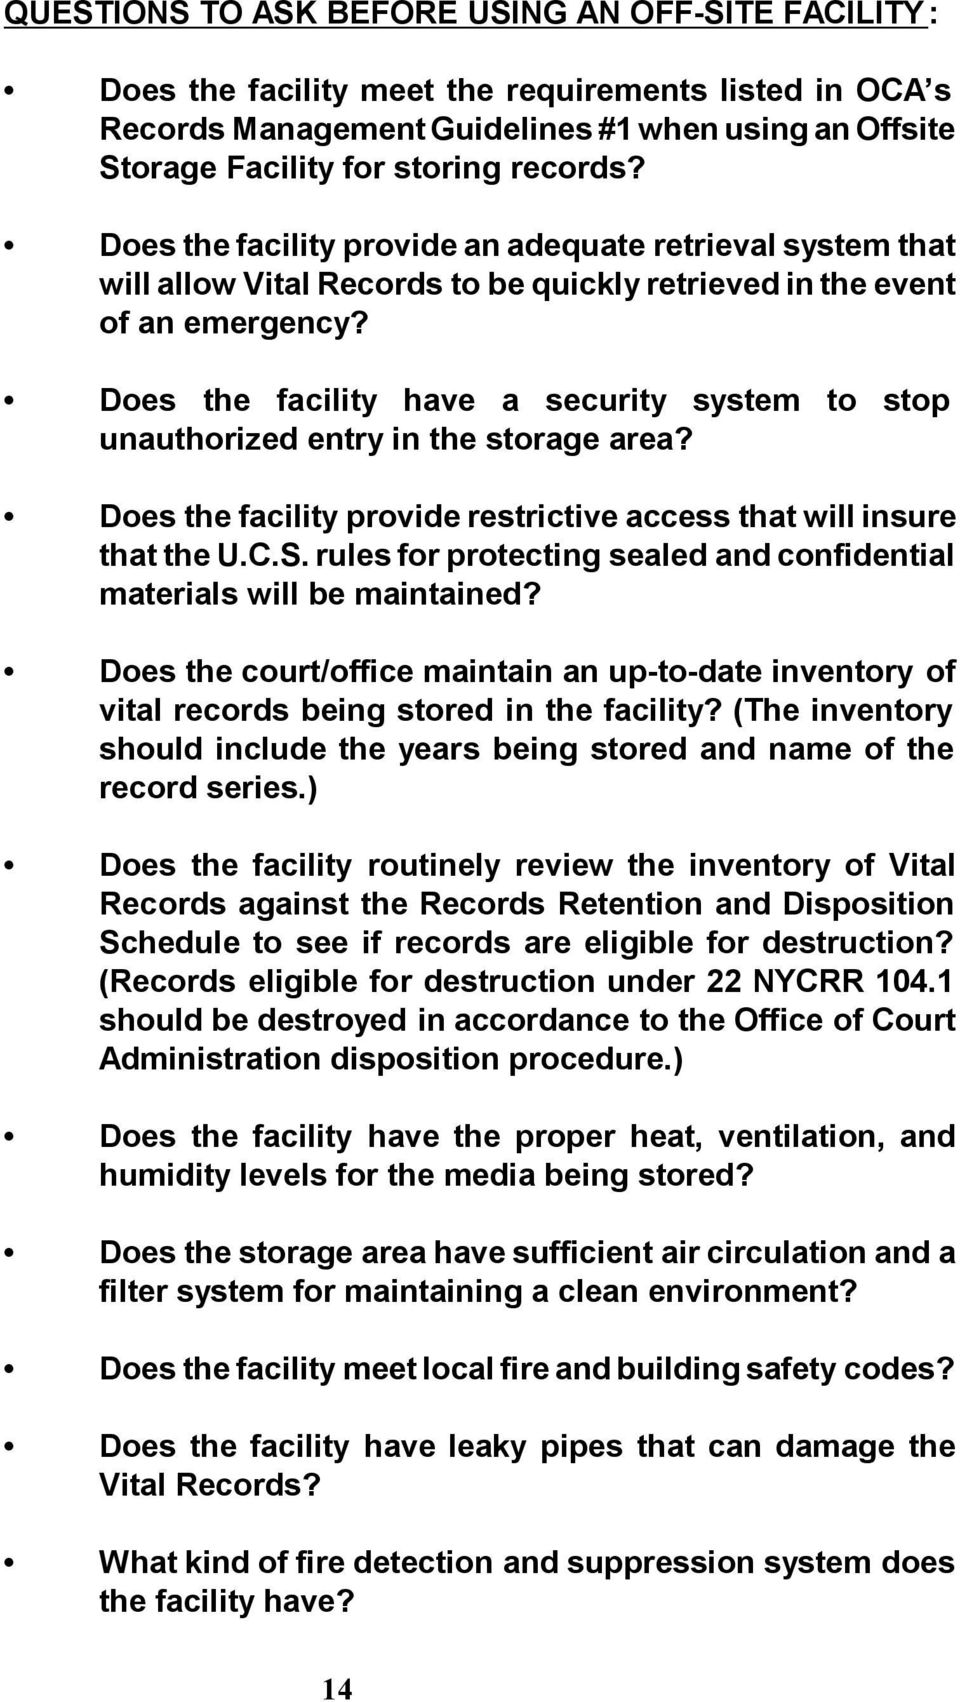 Does the facility have a security system to stop unauthorized entry in the storage area? Does the facility provide restrictive access that will insure that the U.C.S.